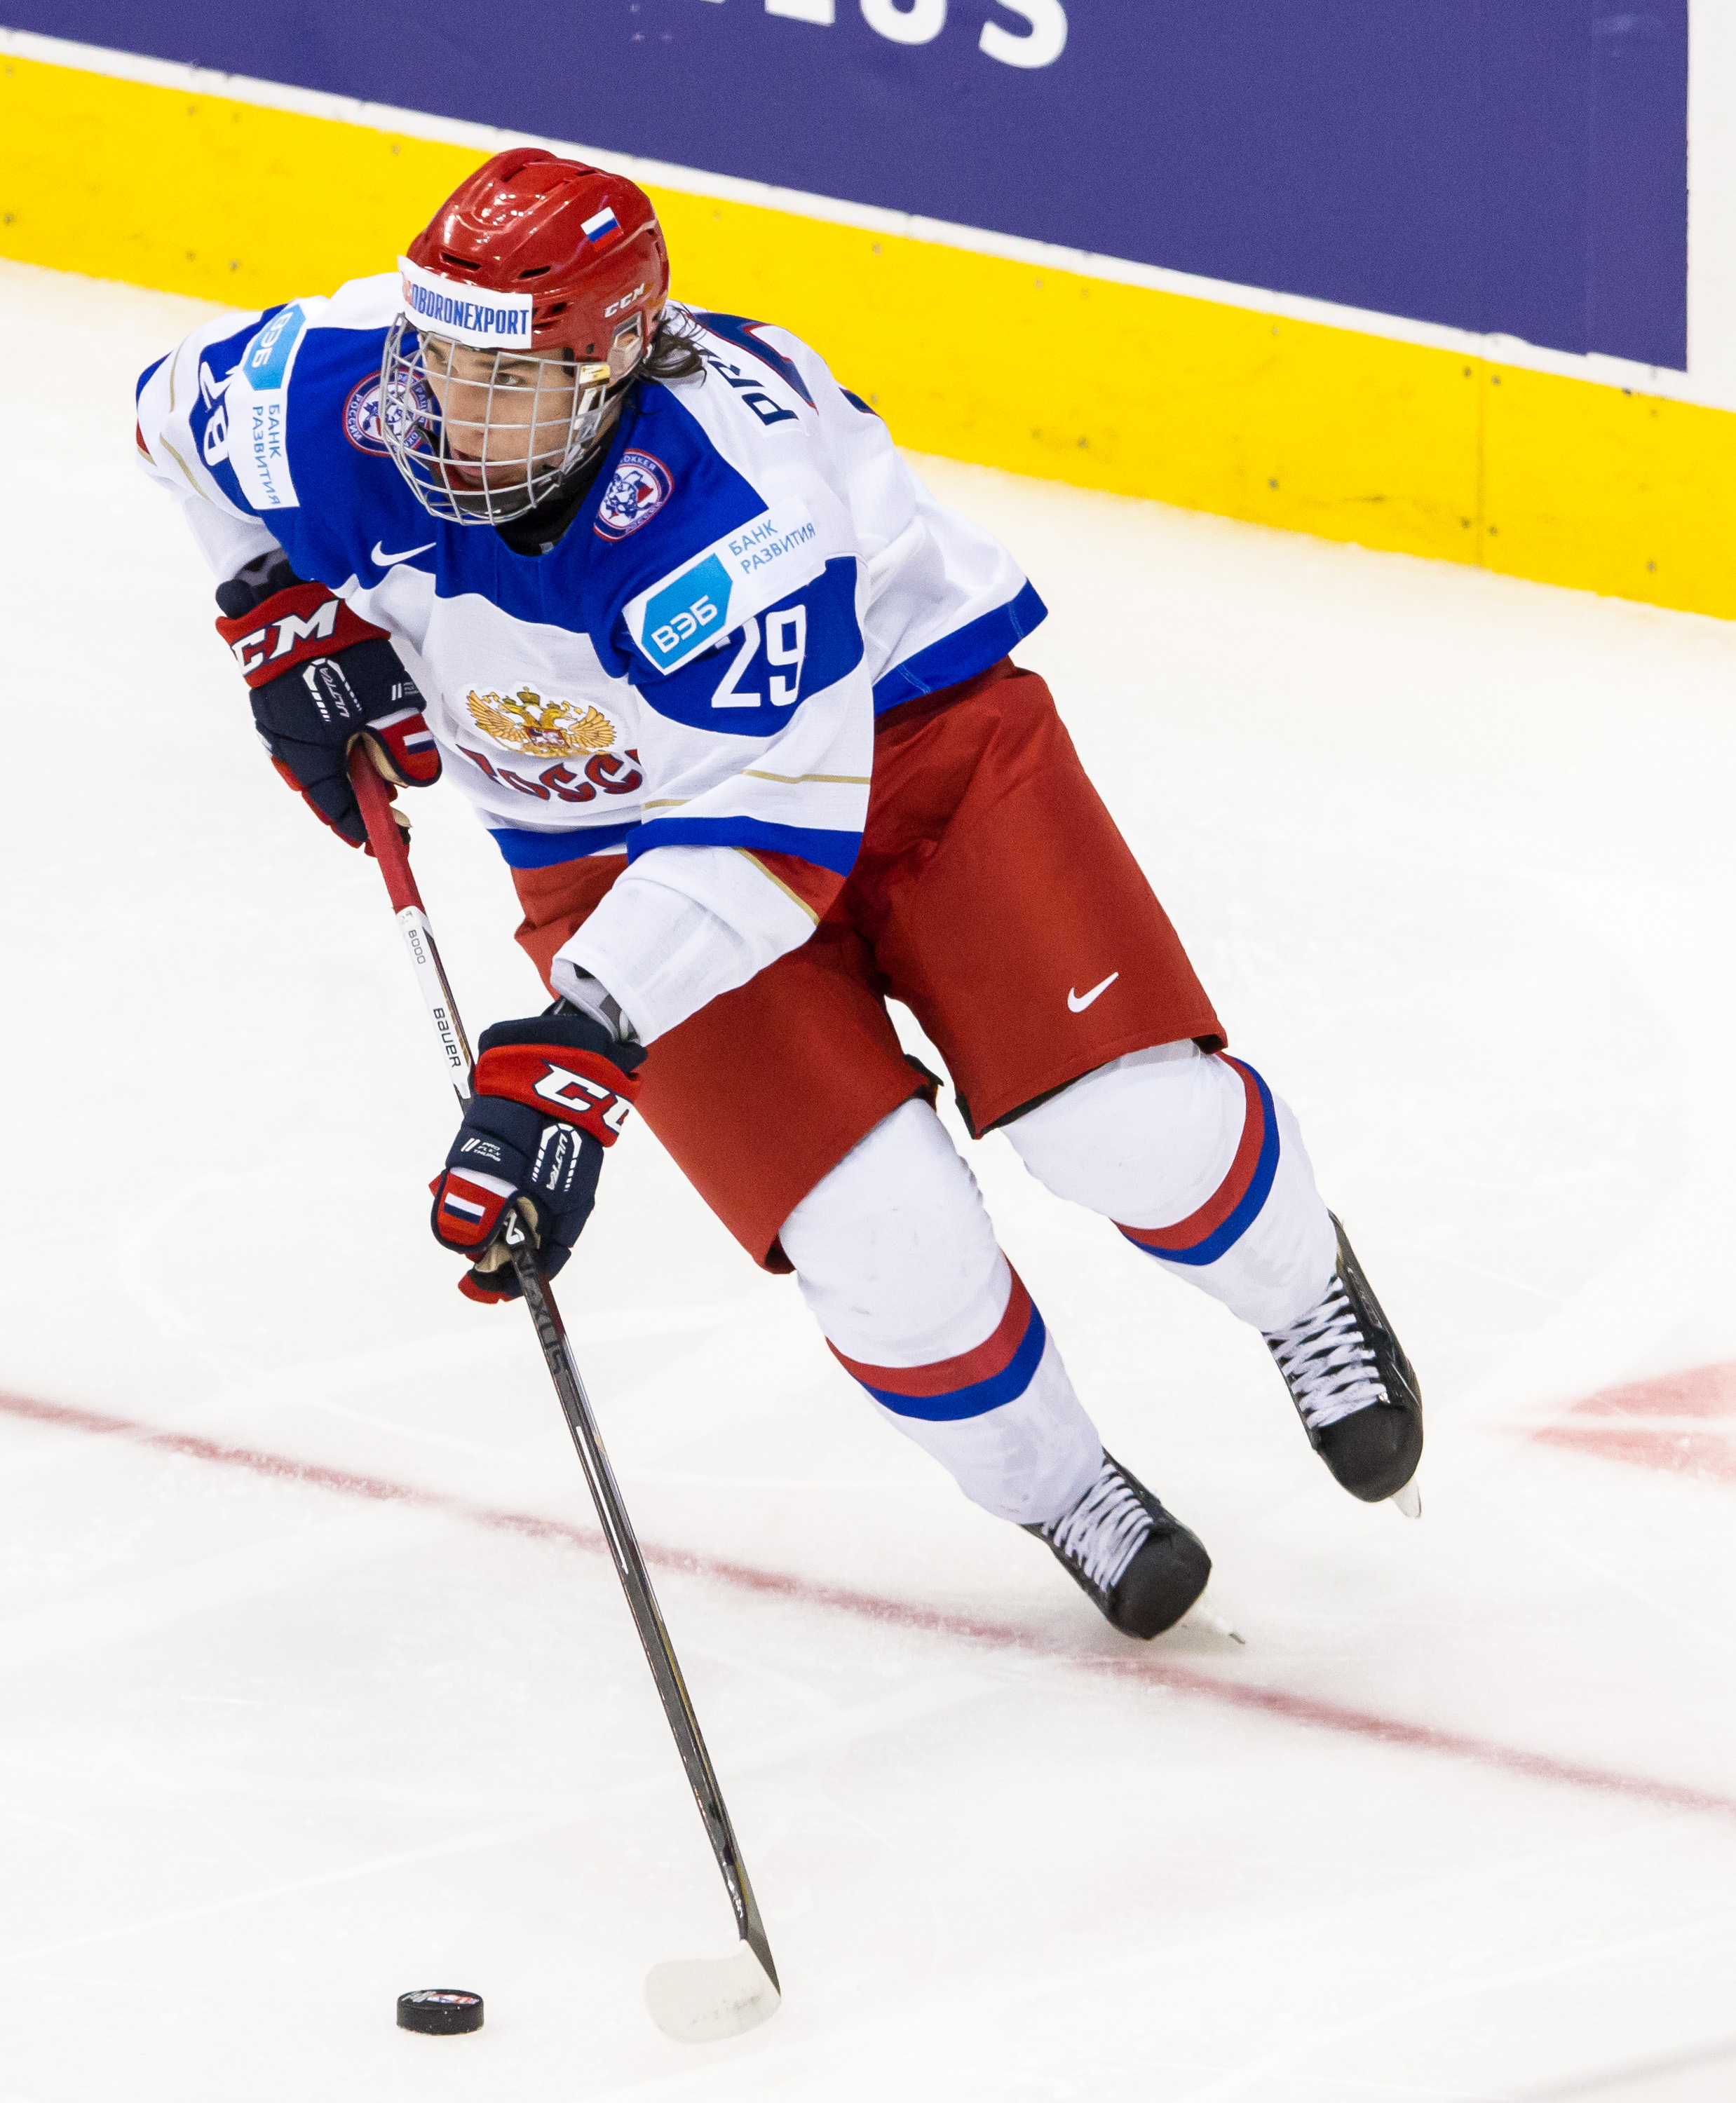 Smooth skating Russian defenseman Ivan Provorov is the next selection in our mock draft.